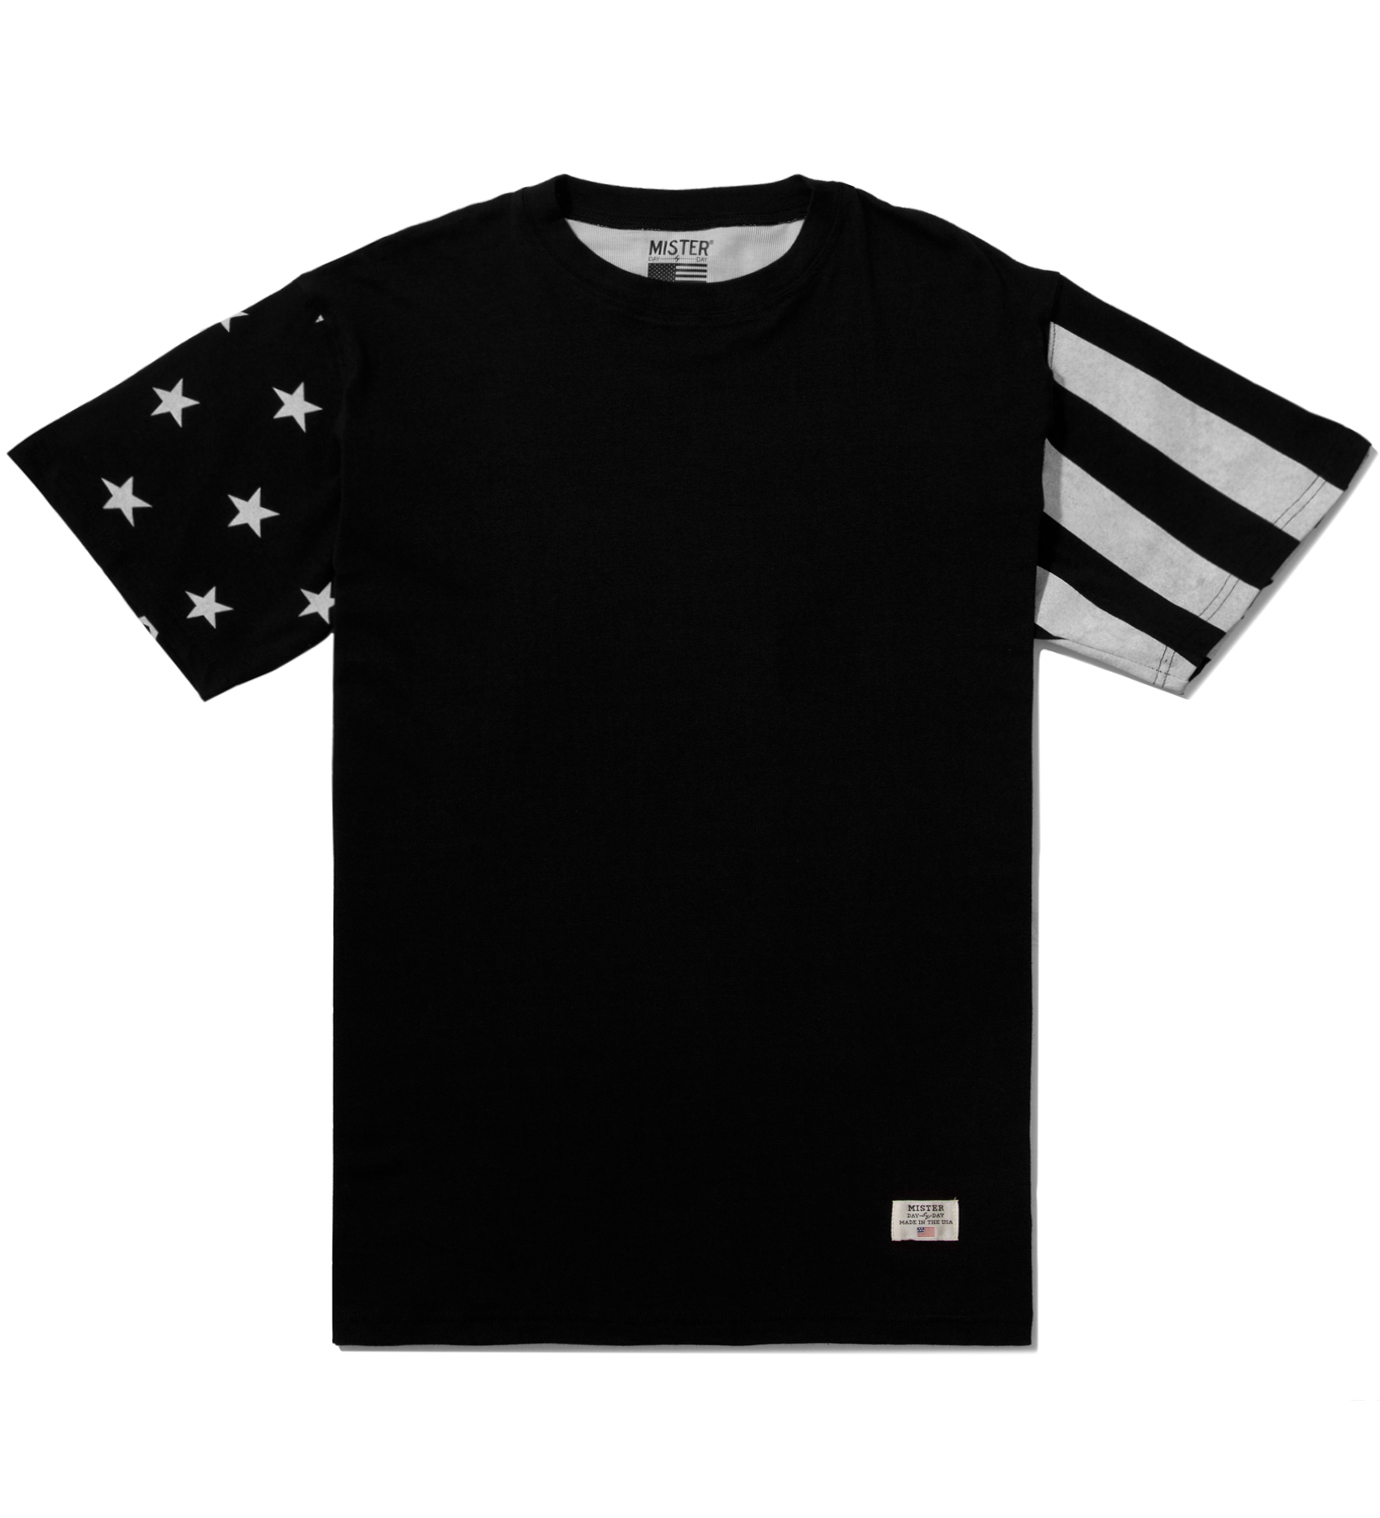 Mister Black/White Print Mr. USA Summer Blend T-Shirt